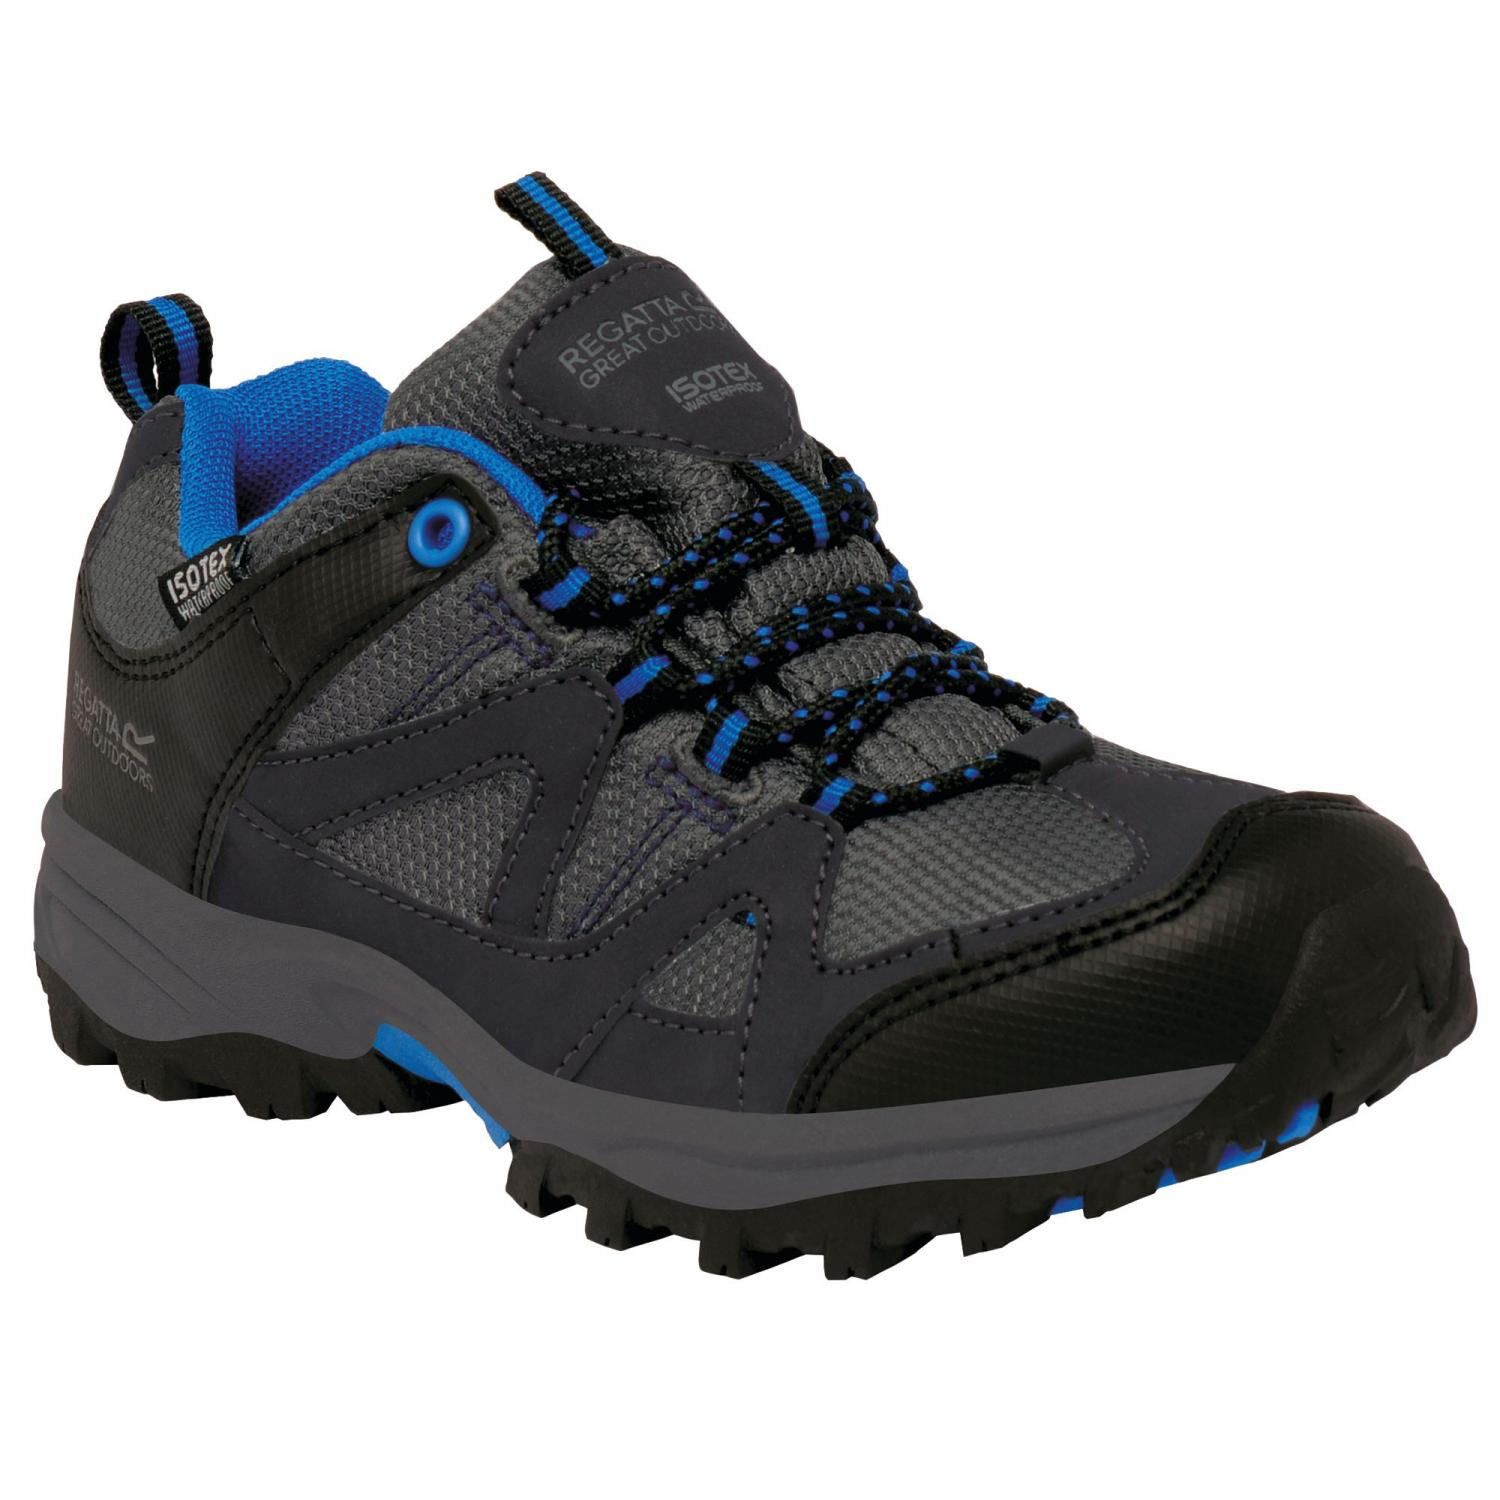 Gatlin Low Junior Walking Shoe Granit Blue